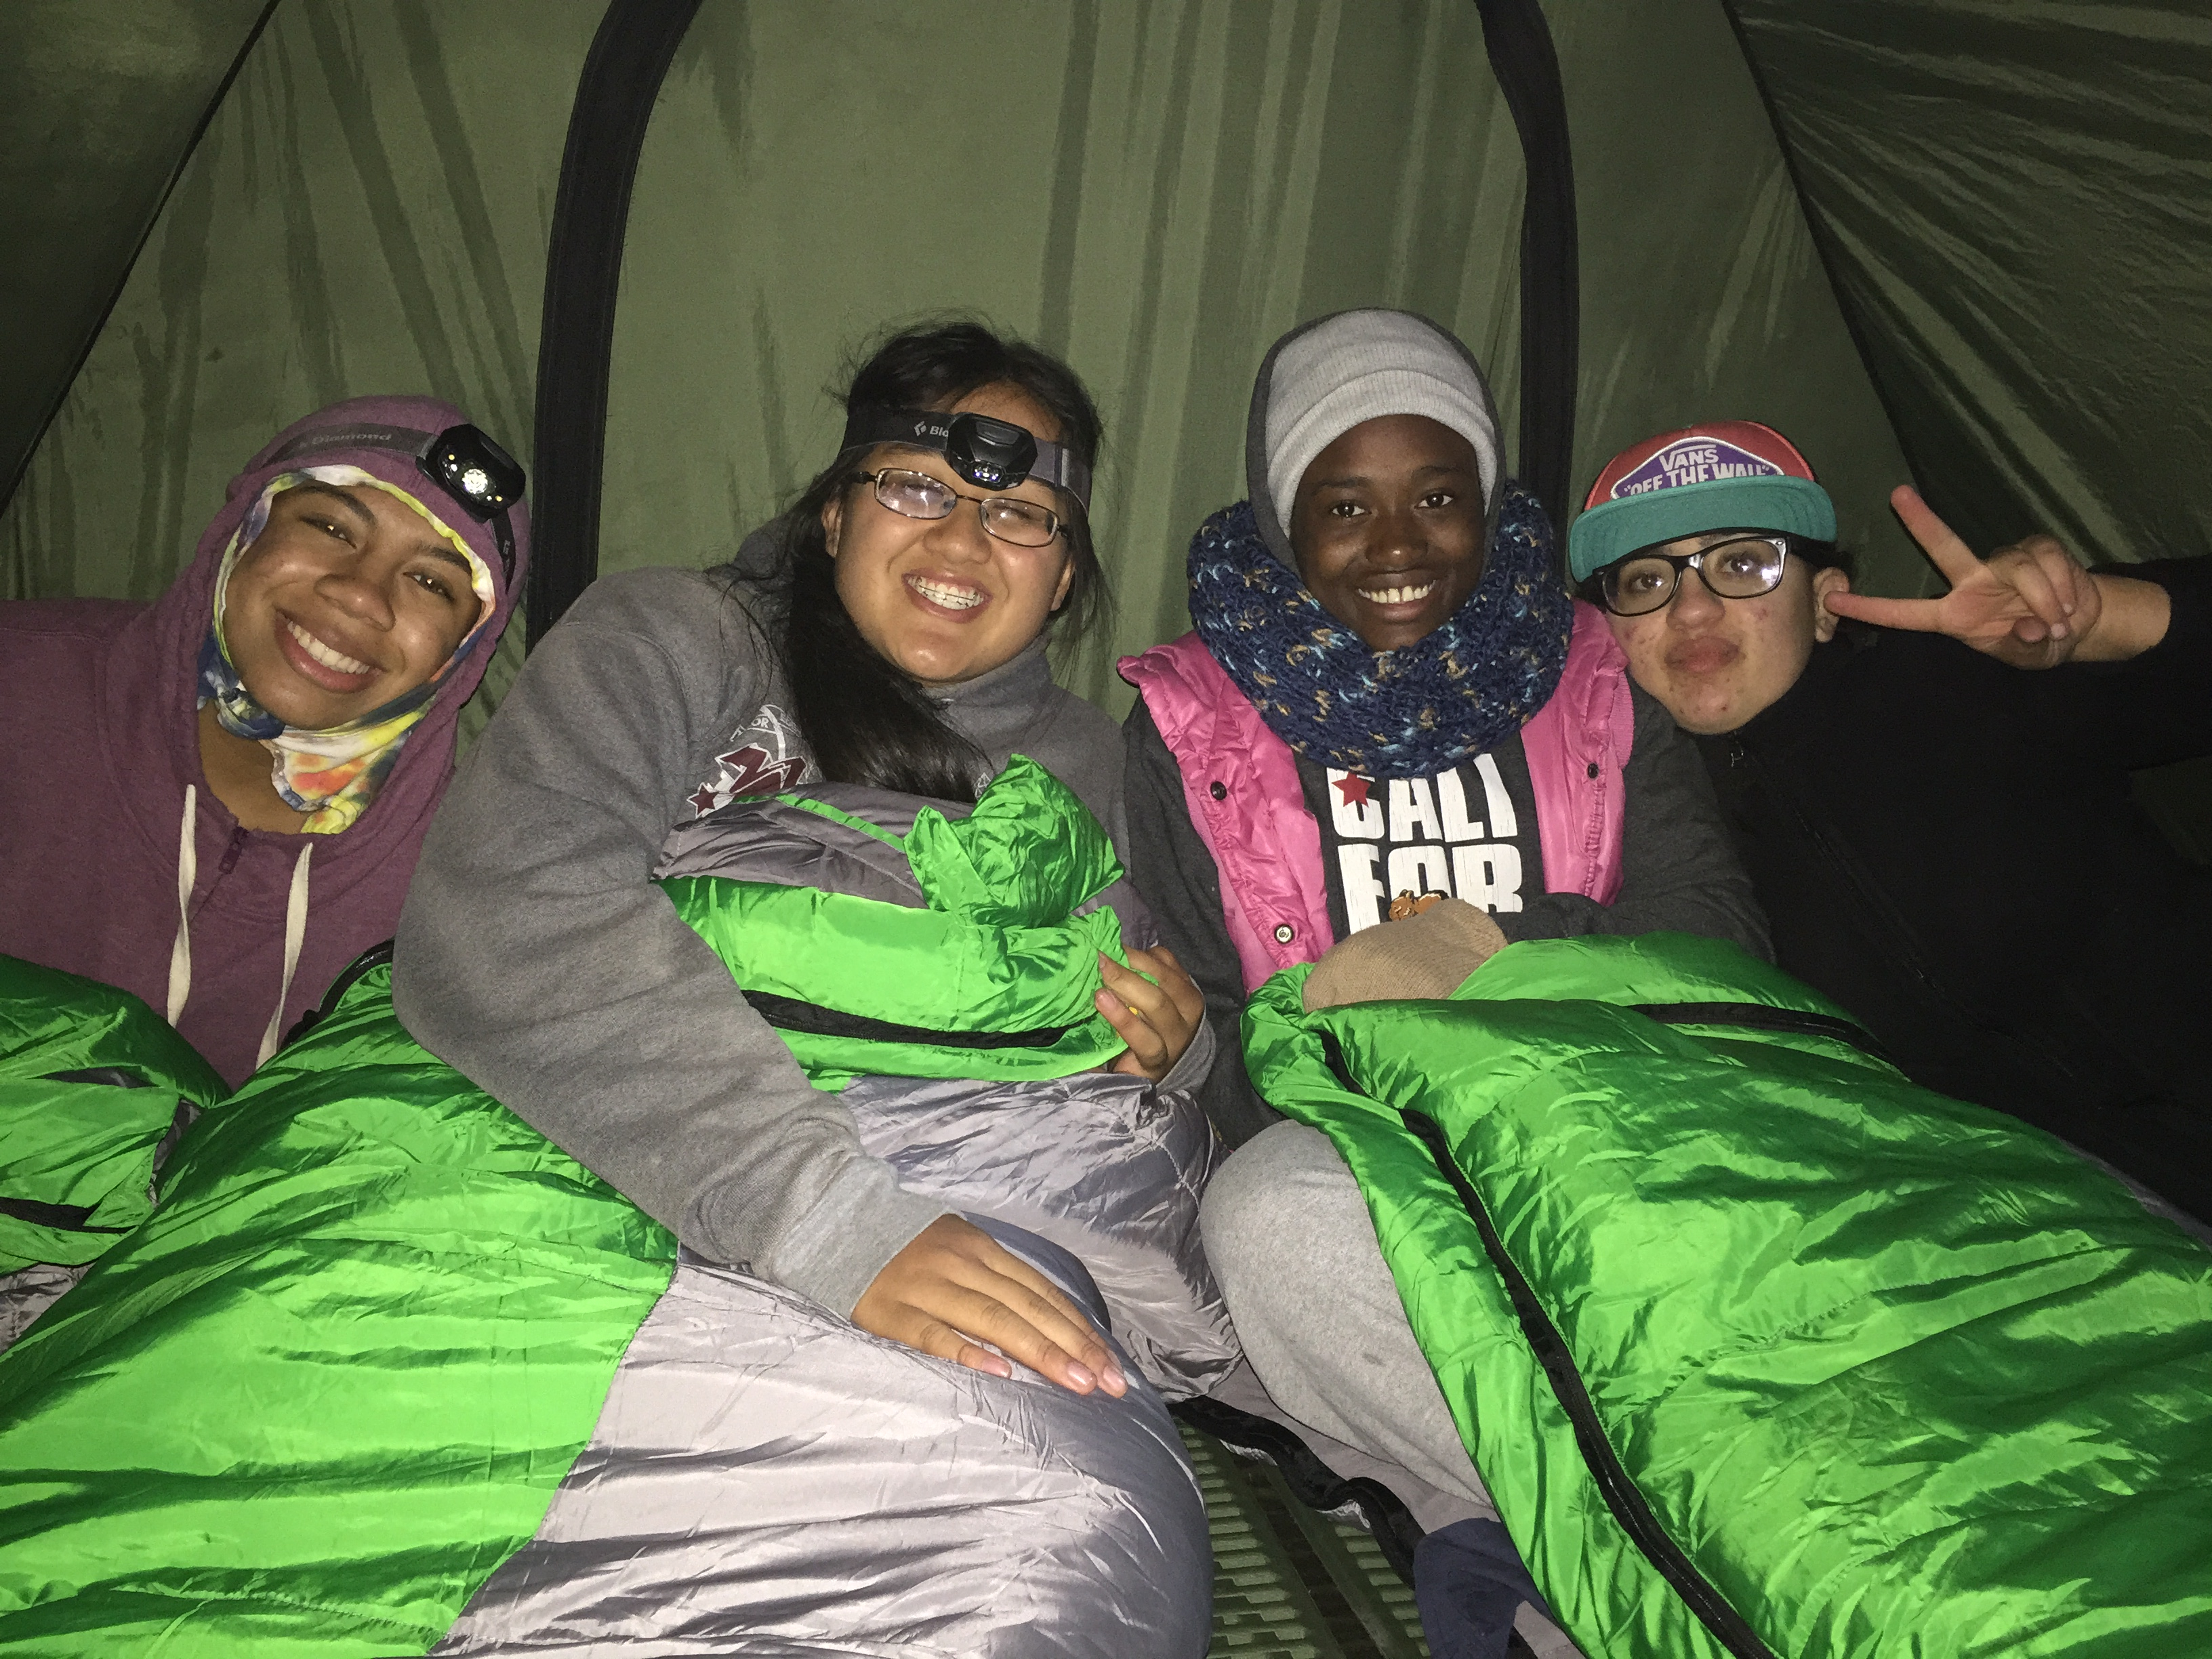 Youth intership camping trip at Point Reyes, CA. From left to right: Lurleen Frazier, Sarah Hoang, Olive Tambou, Stela Zouradakis